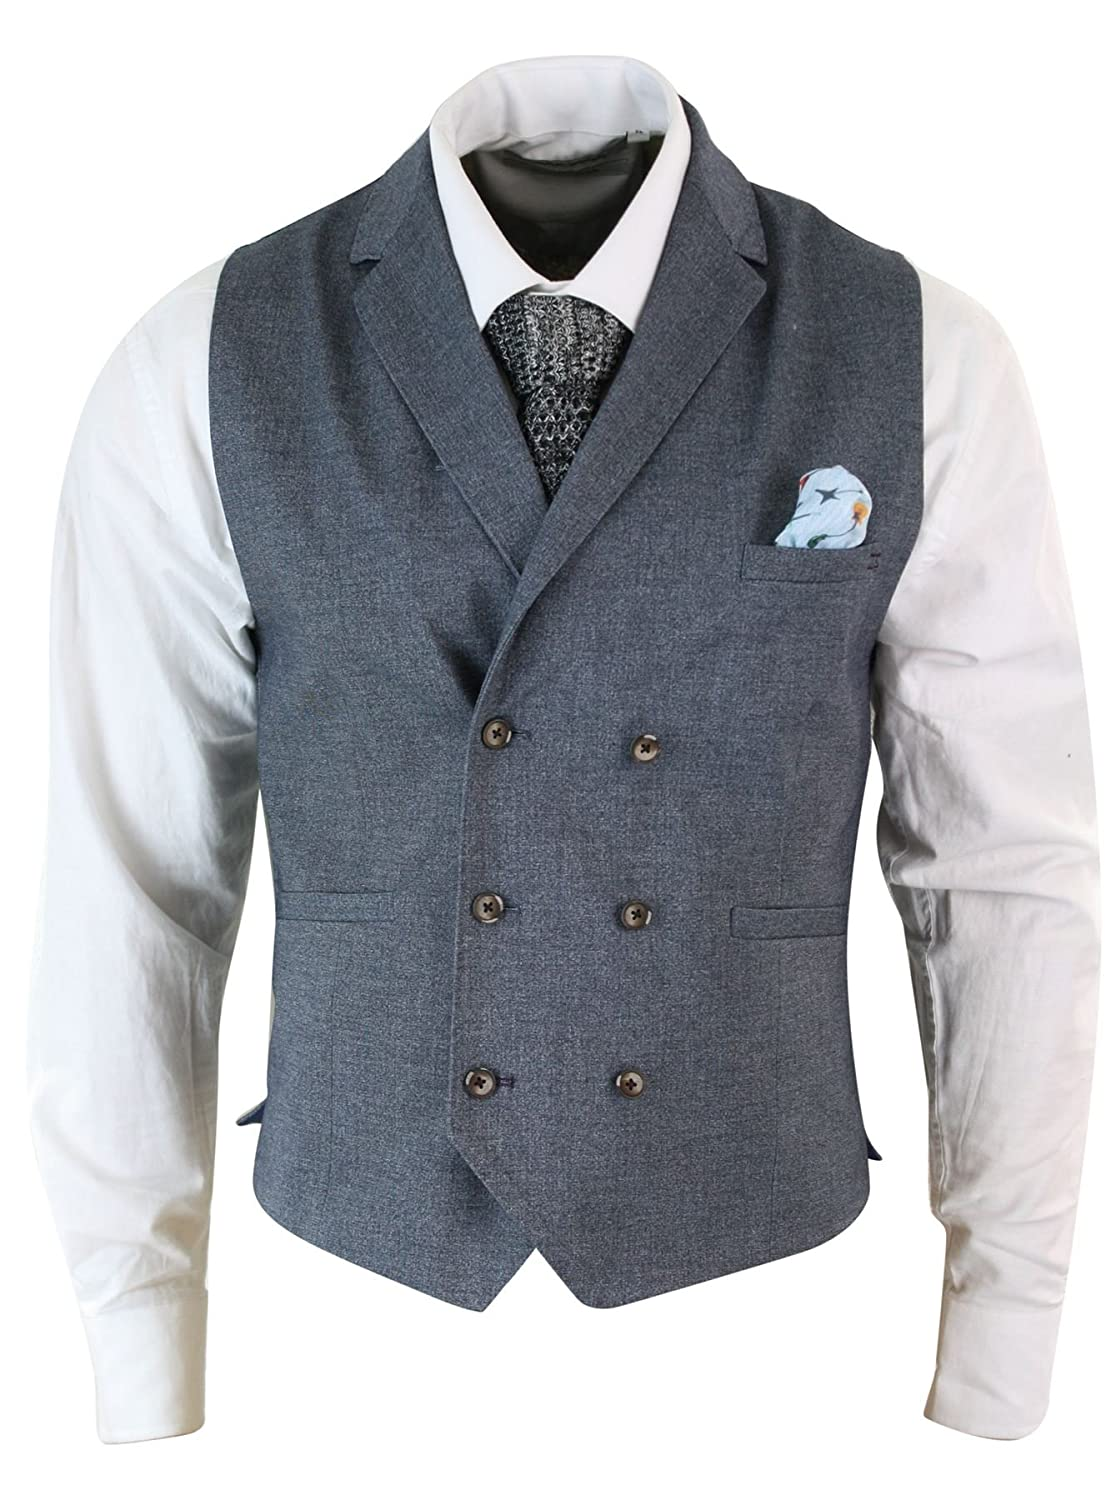 1930s Men's Clothing Mens Vintage Peaky Blinders Double Breasted Waistcoat Tweed Check Smart Casual £34.99 AT vintagedancer.com